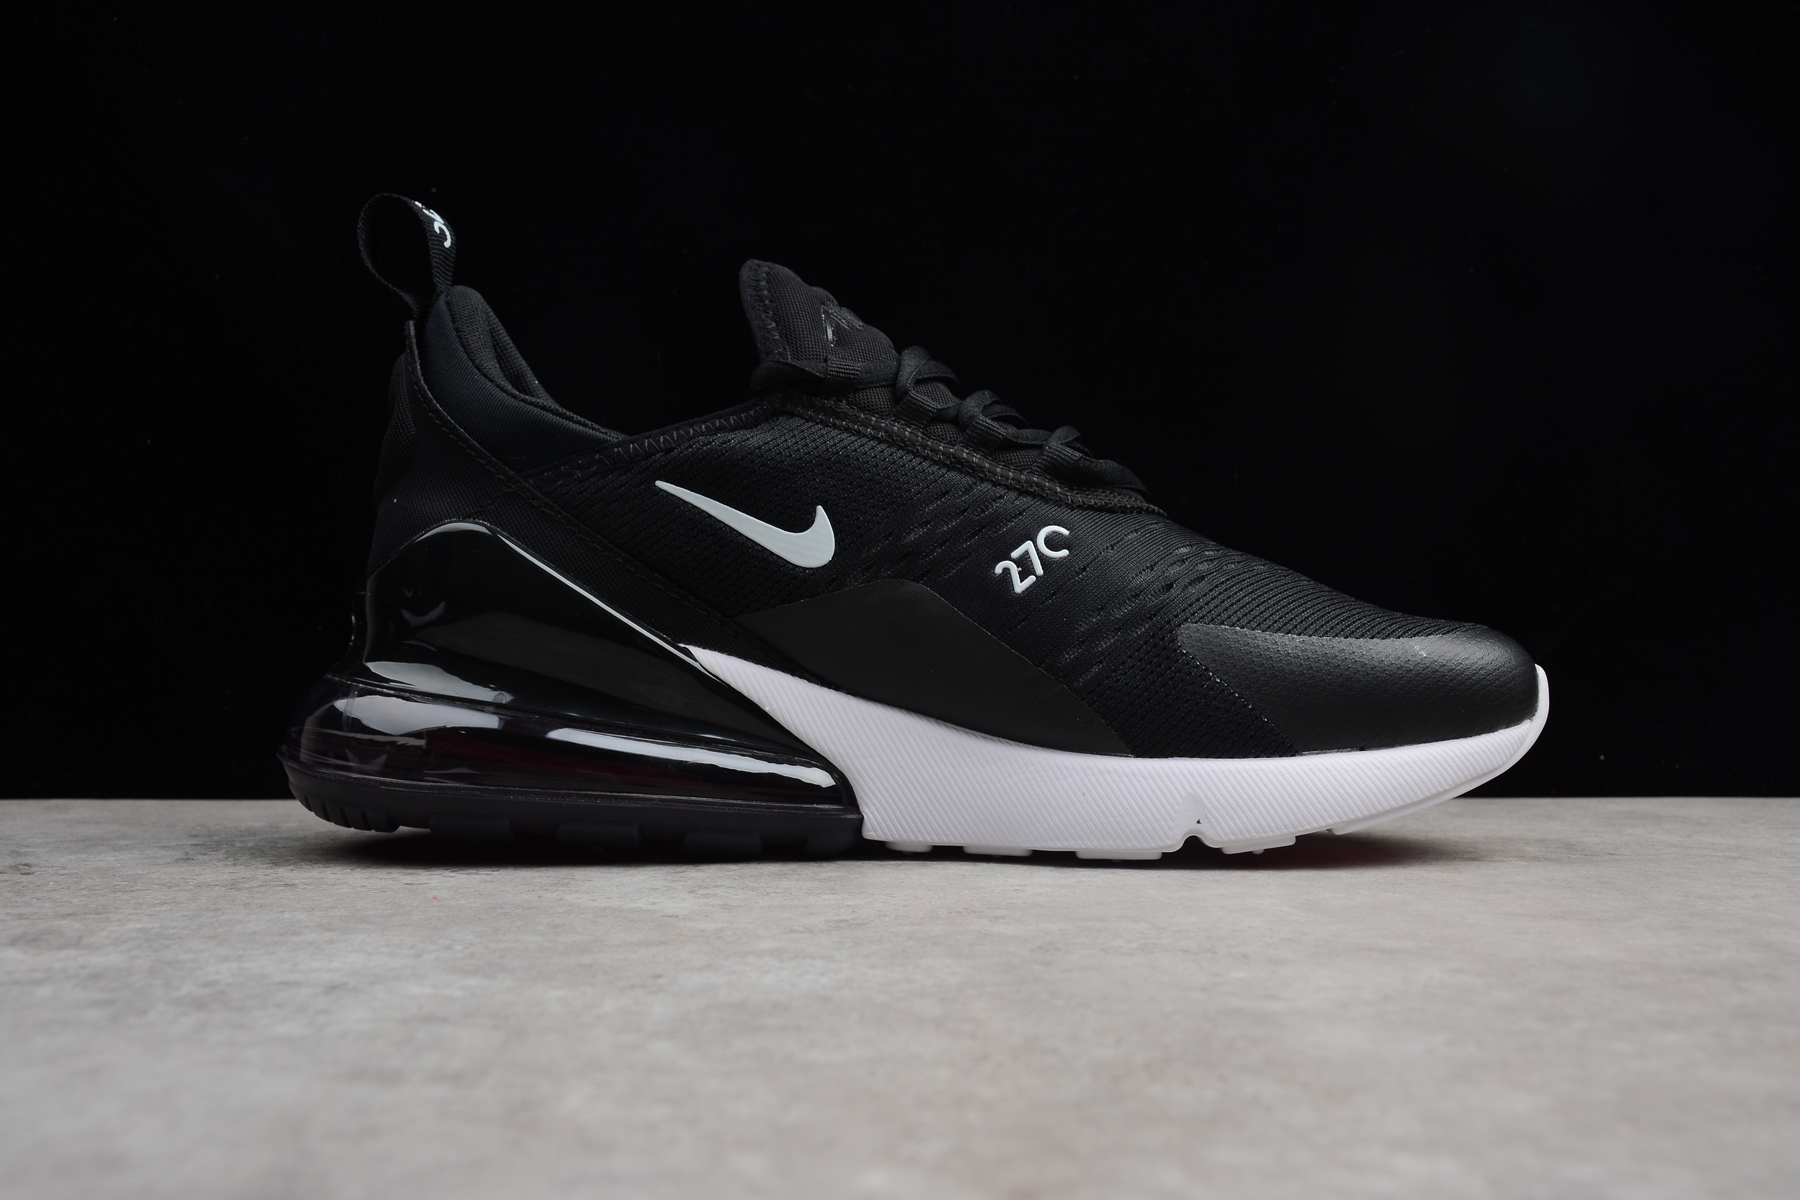 Nike Air Max 270 Black White Ah8050 002 Men S And Women S Size